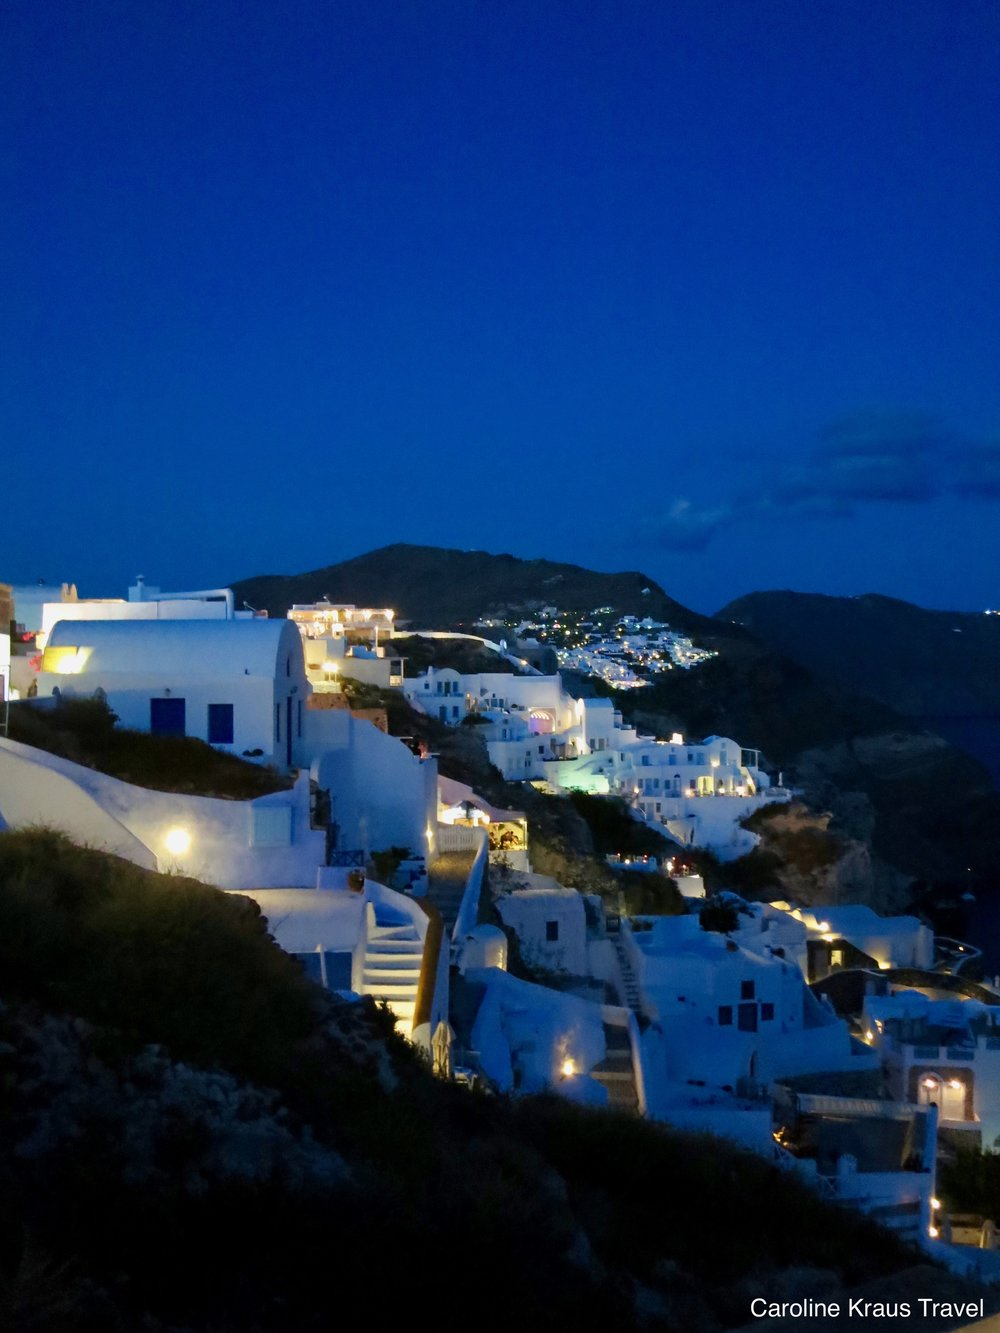 Imerovigli, Santorini, Greece at night